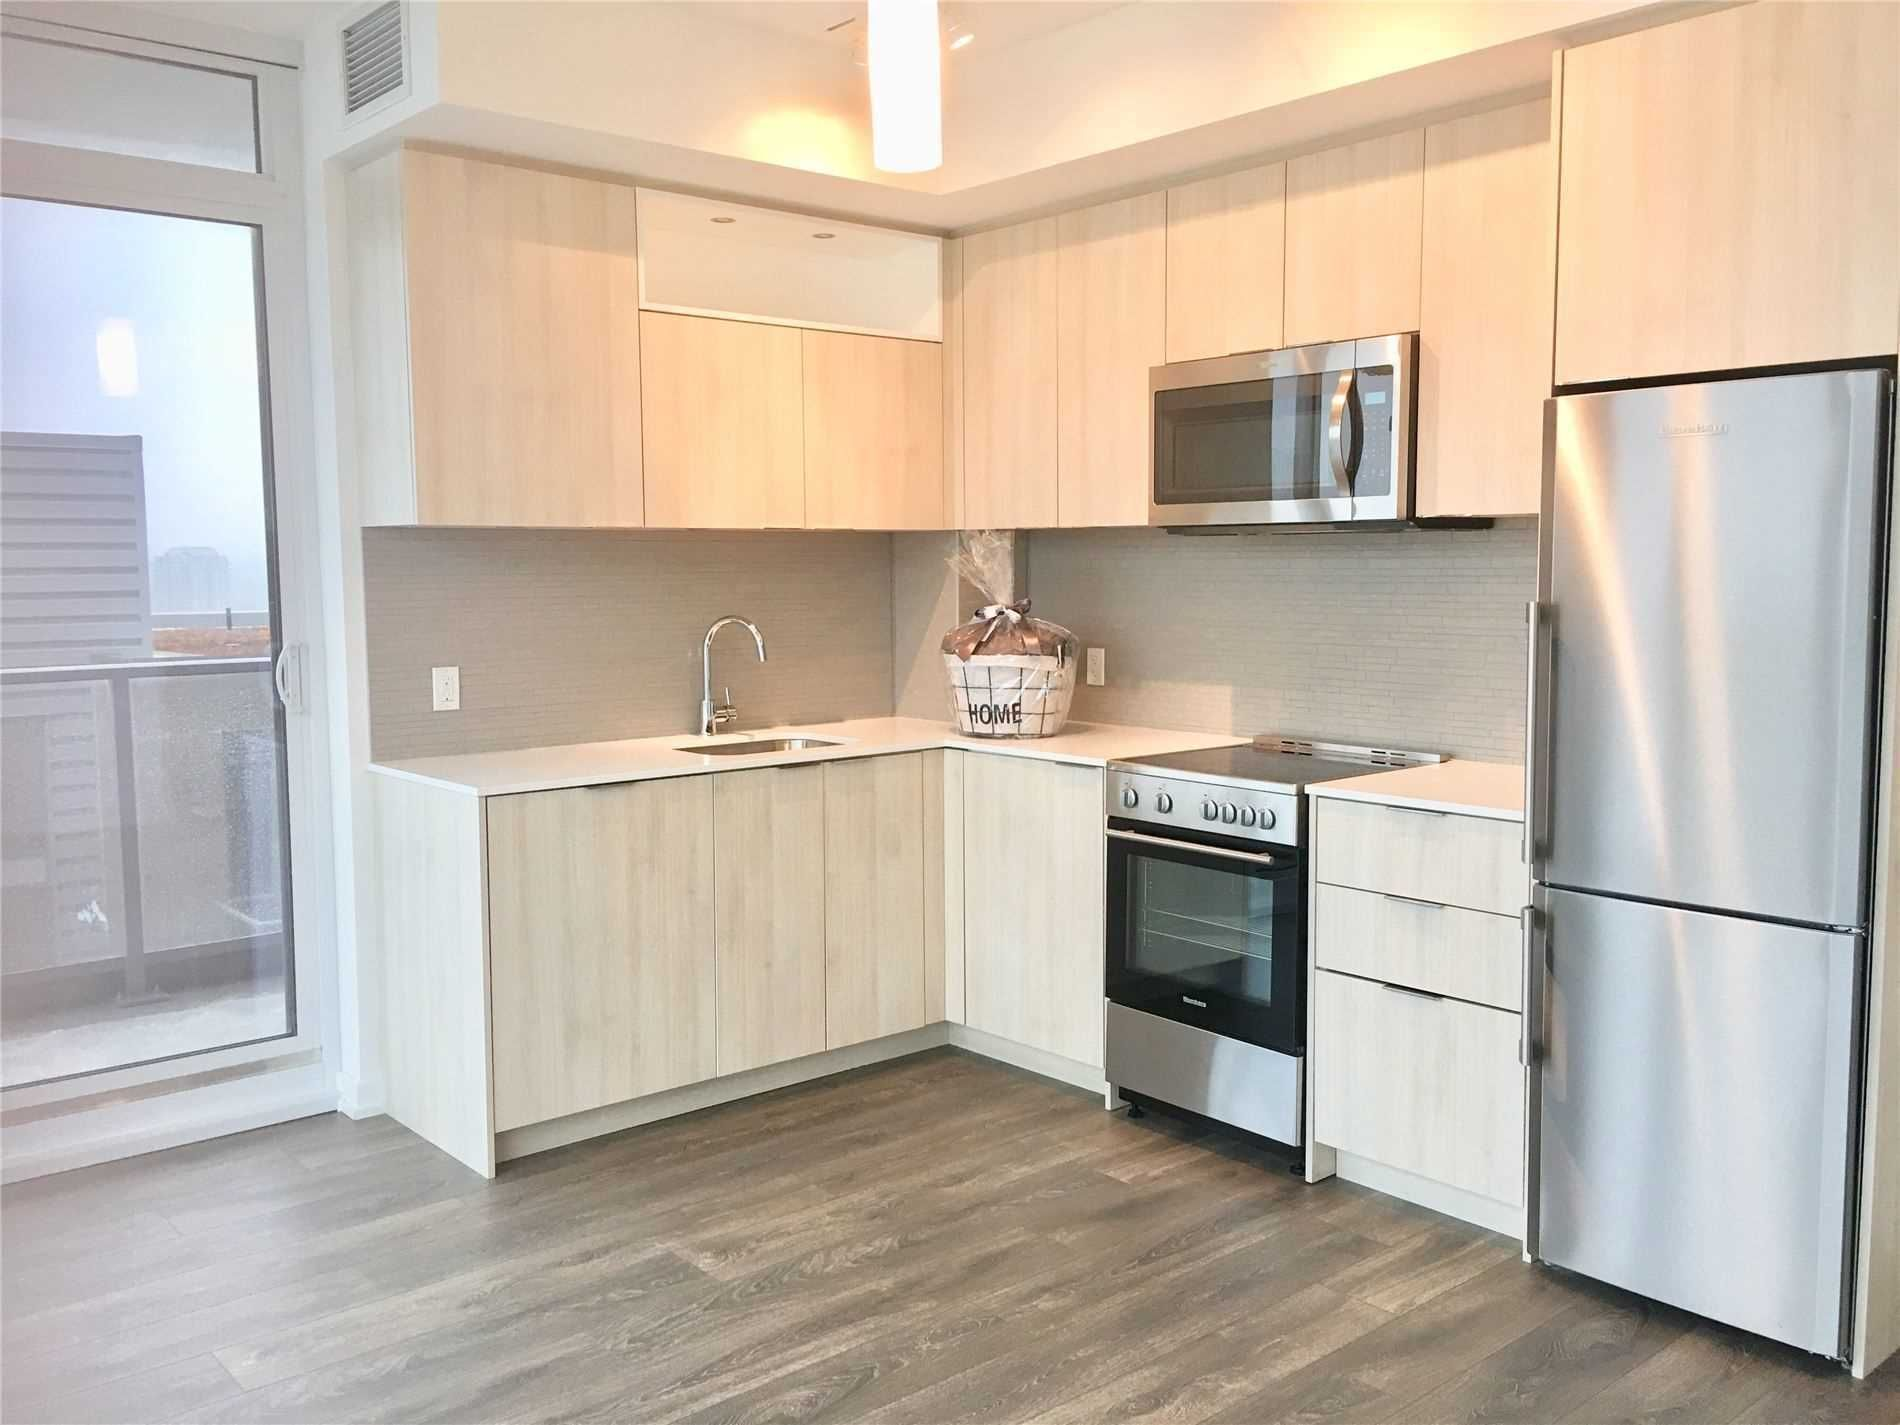 50 Forest Manor Rd, unit 702 for rent in Toronto - image #2